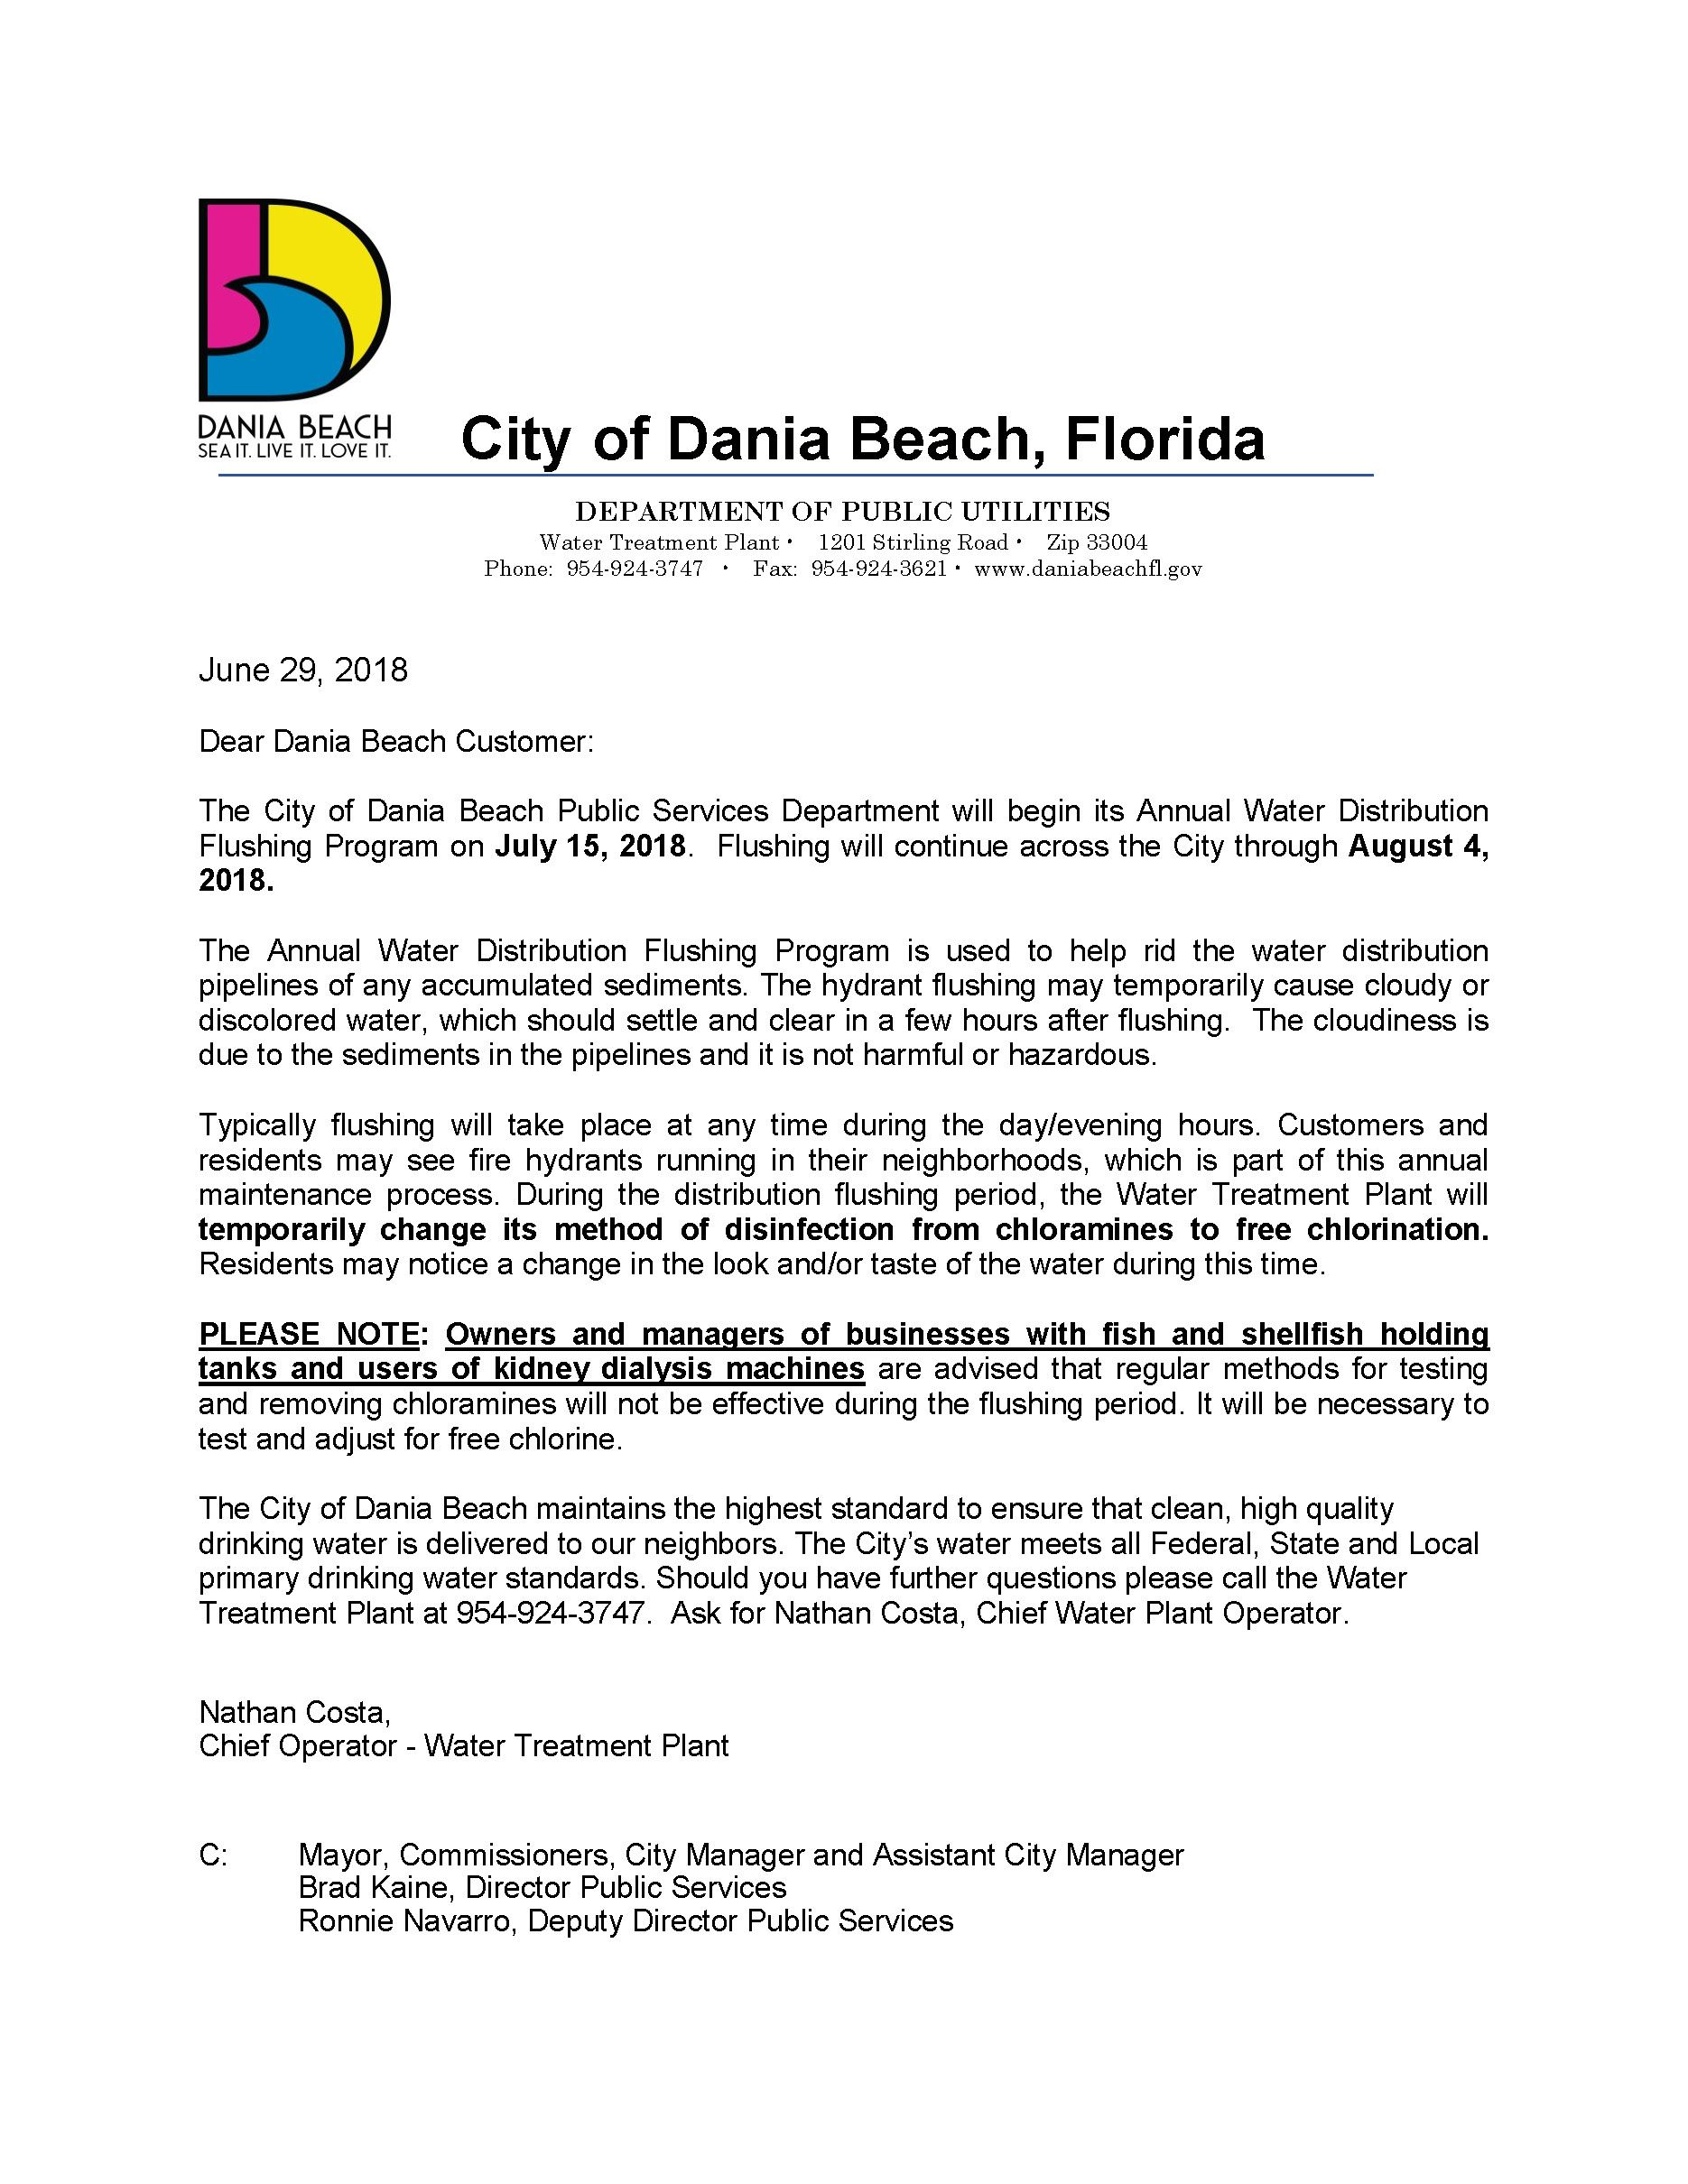 annual water flushing program notice